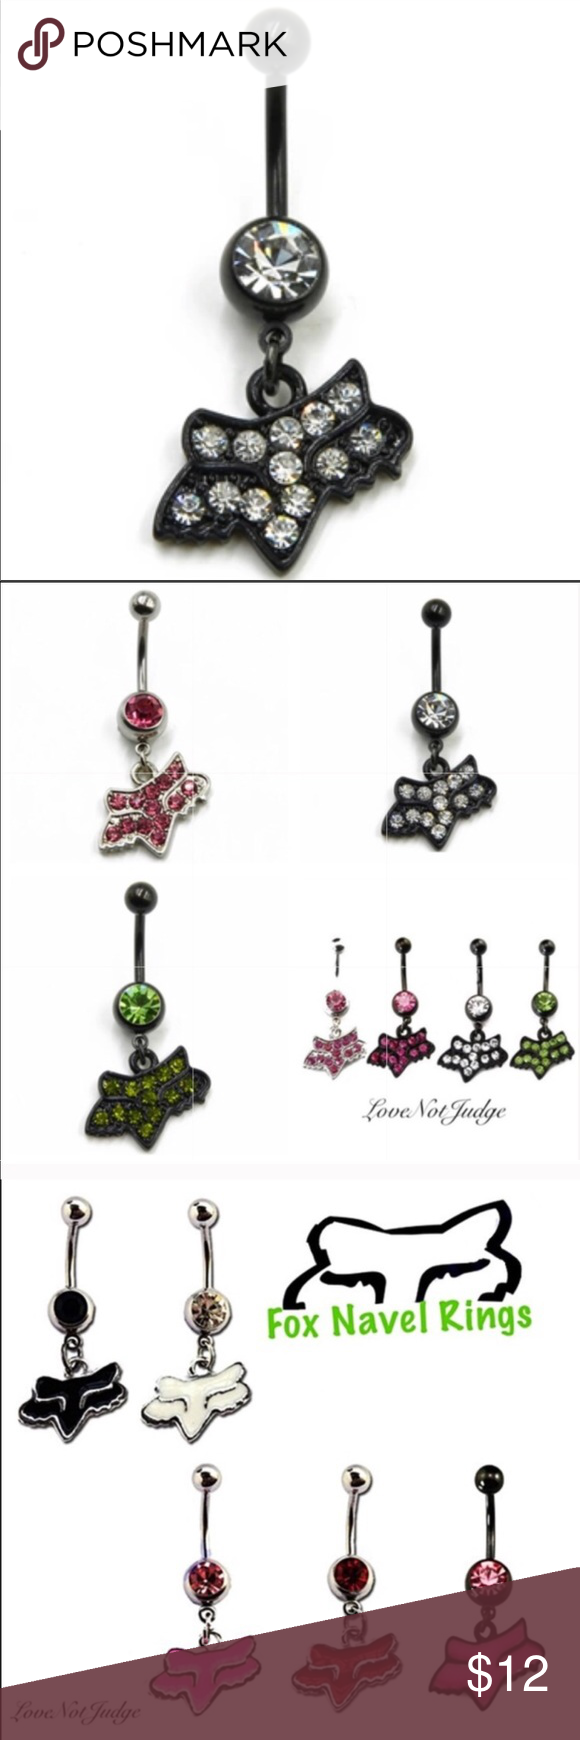 Fox Racing Brand Belly Button Rings Diamond Boutique Pinterest